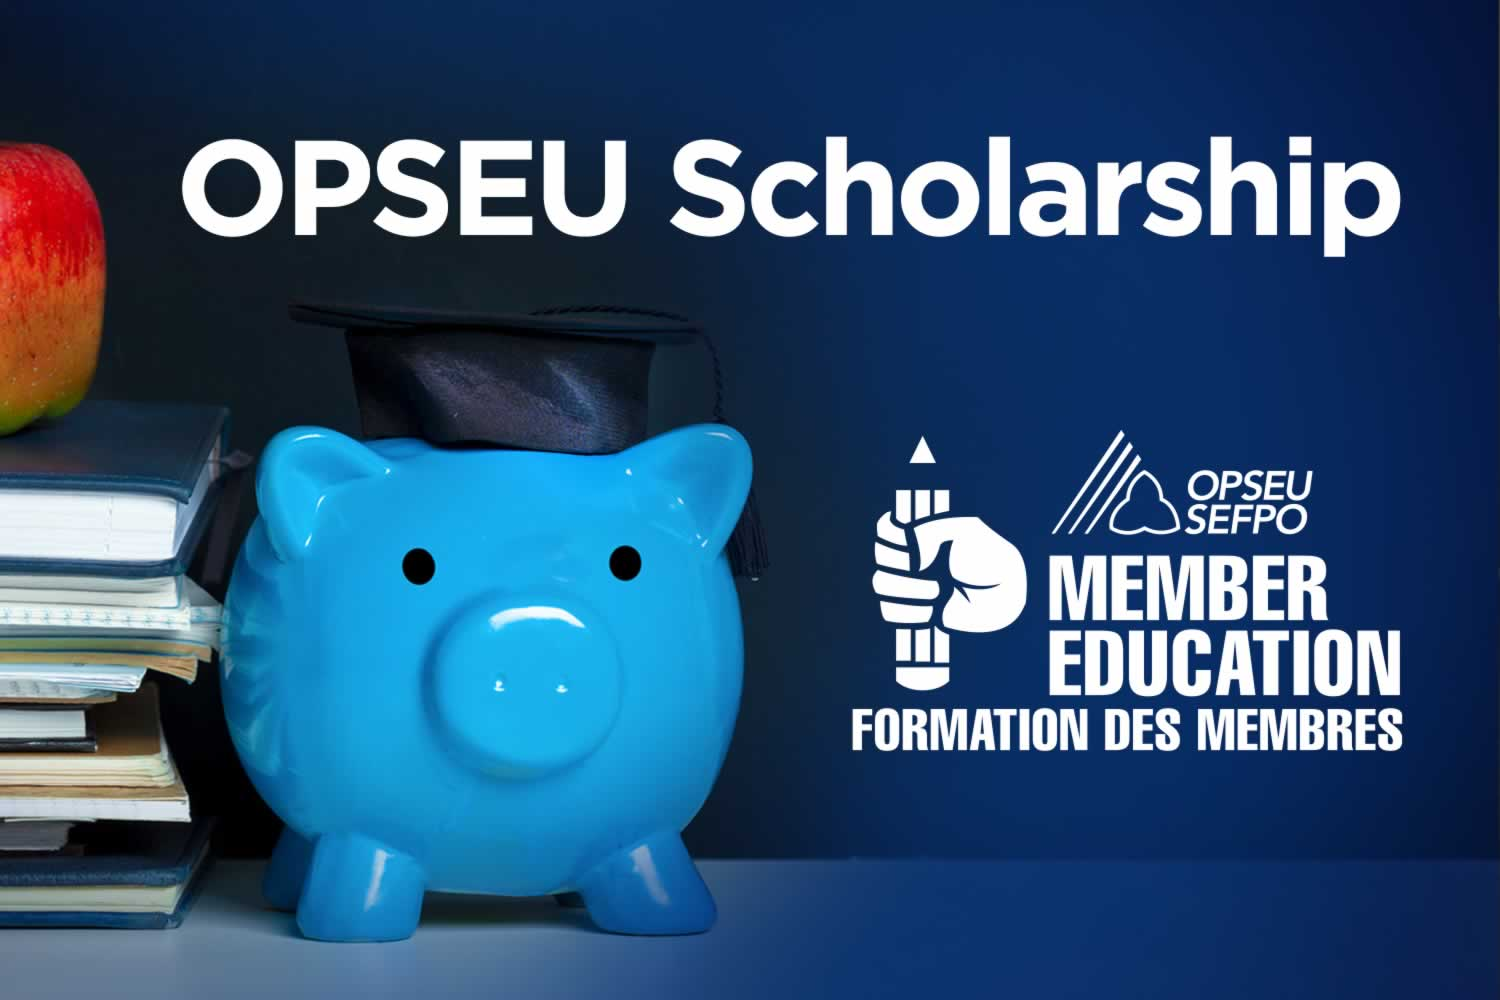 OPSEU Scholarship. Member Education. Image of books, an apple and a piggy bank wearing a grad cap